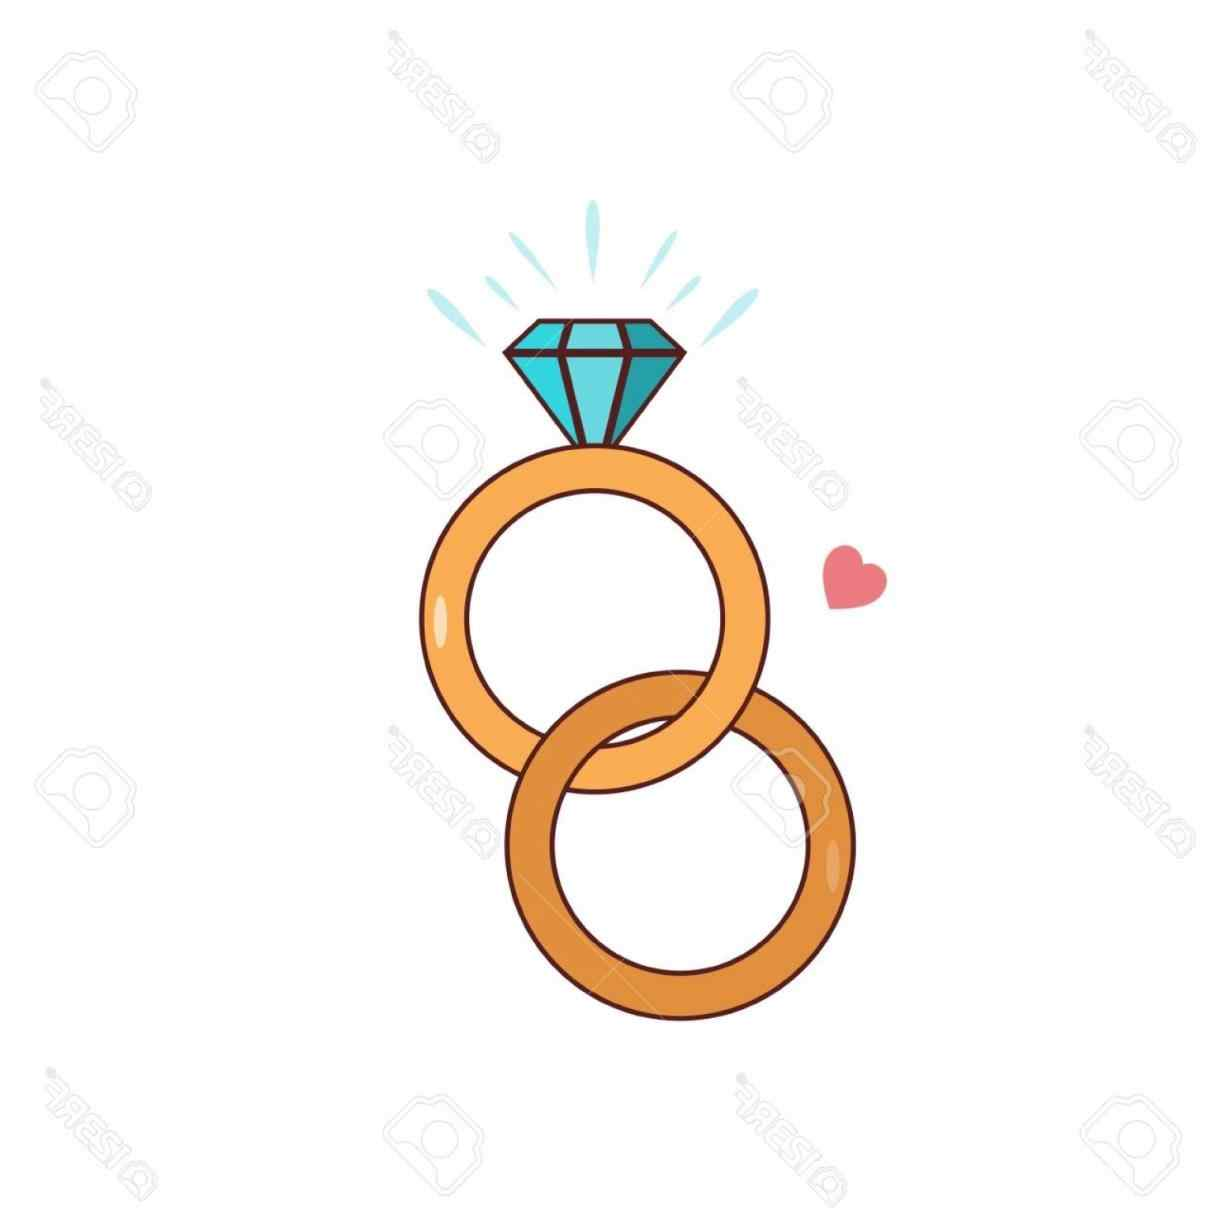 Wedding Rings Clipart.Ring Clipart At Getdrawings Com Free For Personal Use Ring